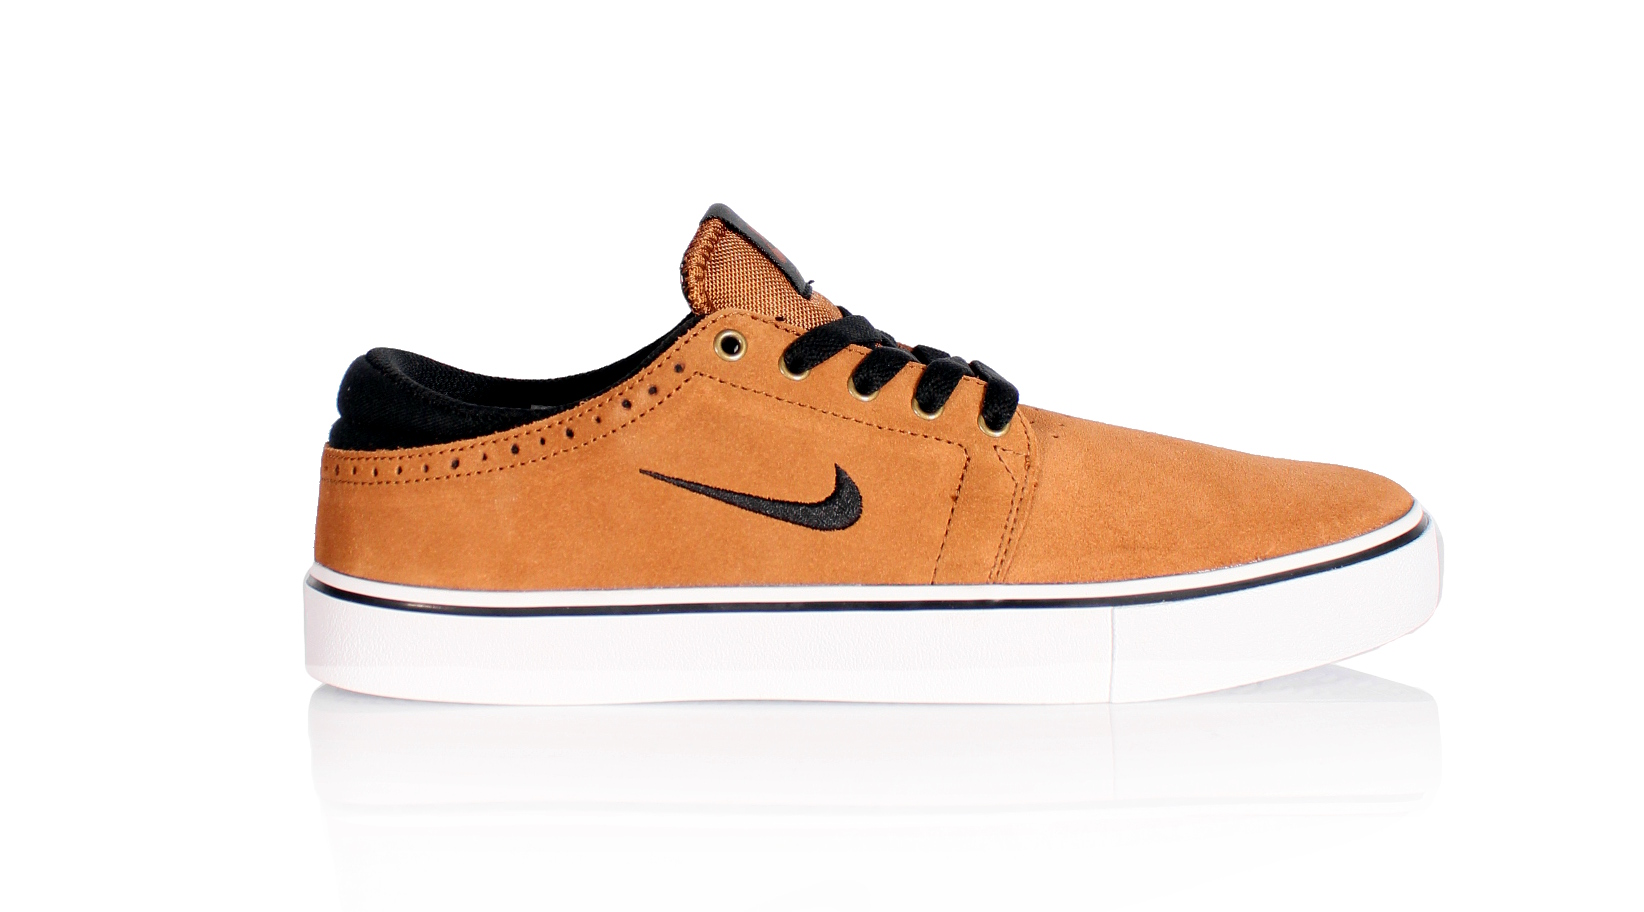 Buty Nike Sb Team Edition (Ale Brown)